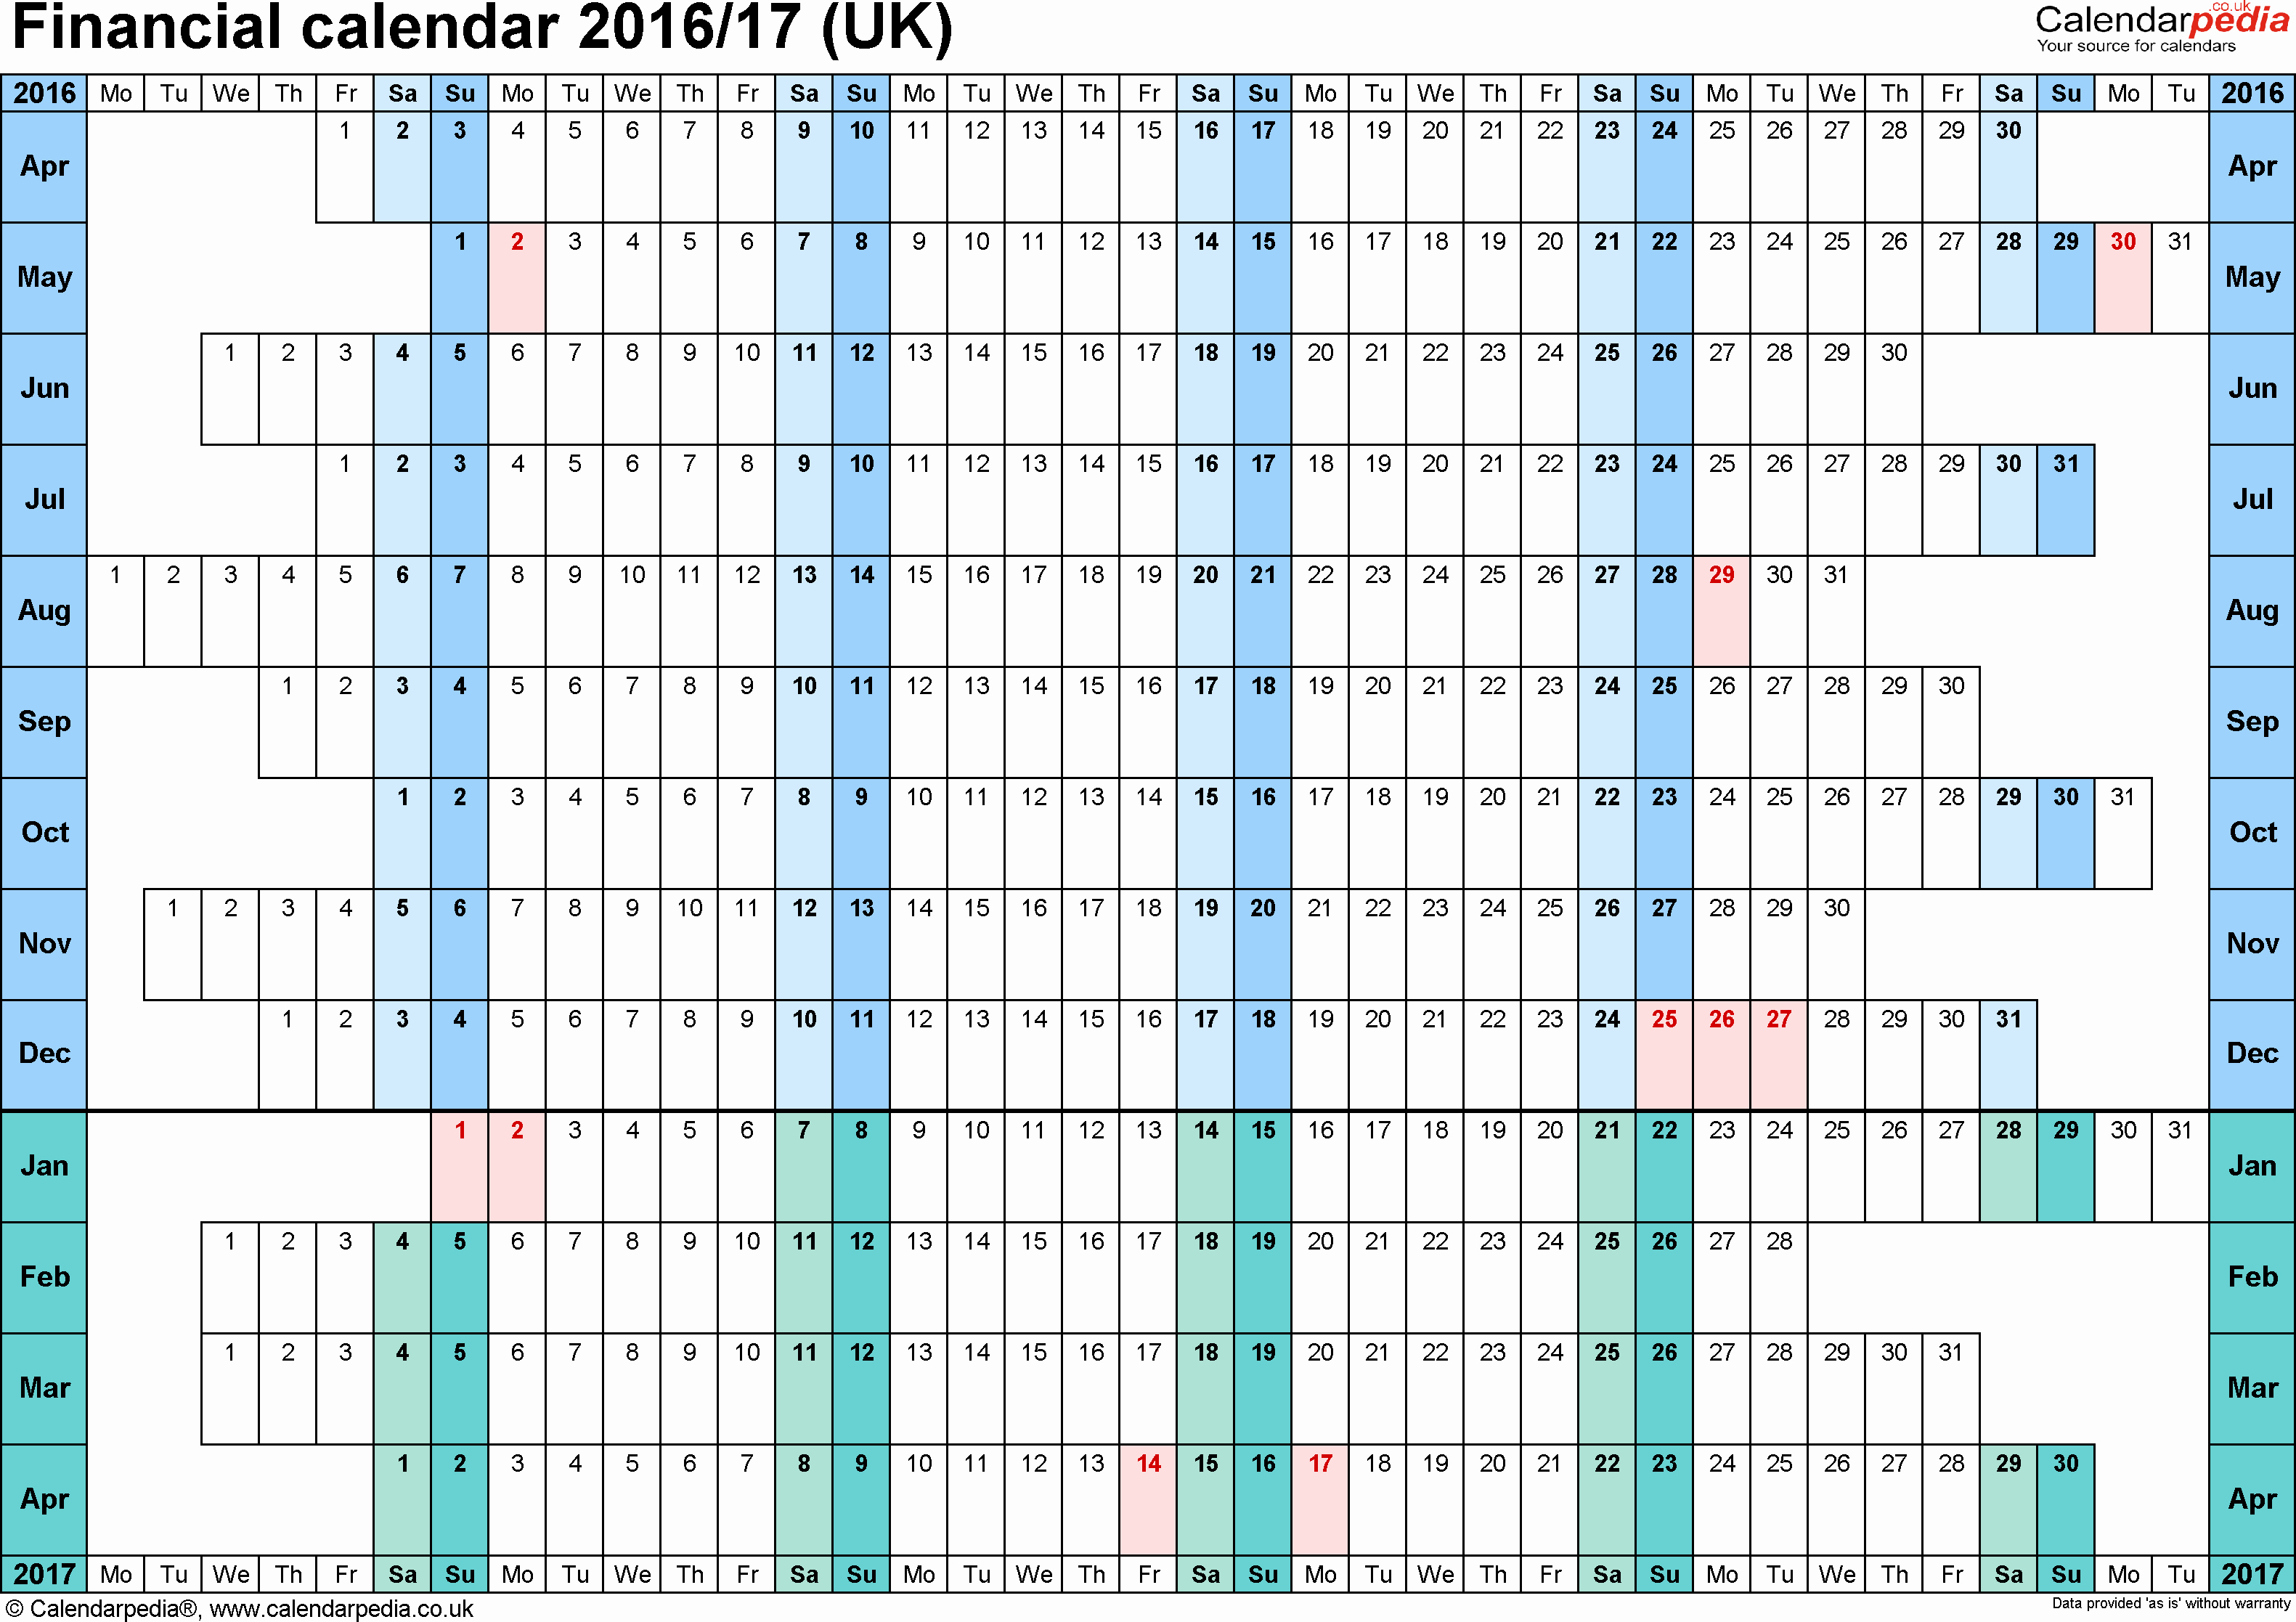 Calendar 2016-17 Template Lovely Financial Calendars 2016 17 Uk In Microsoft Excel format